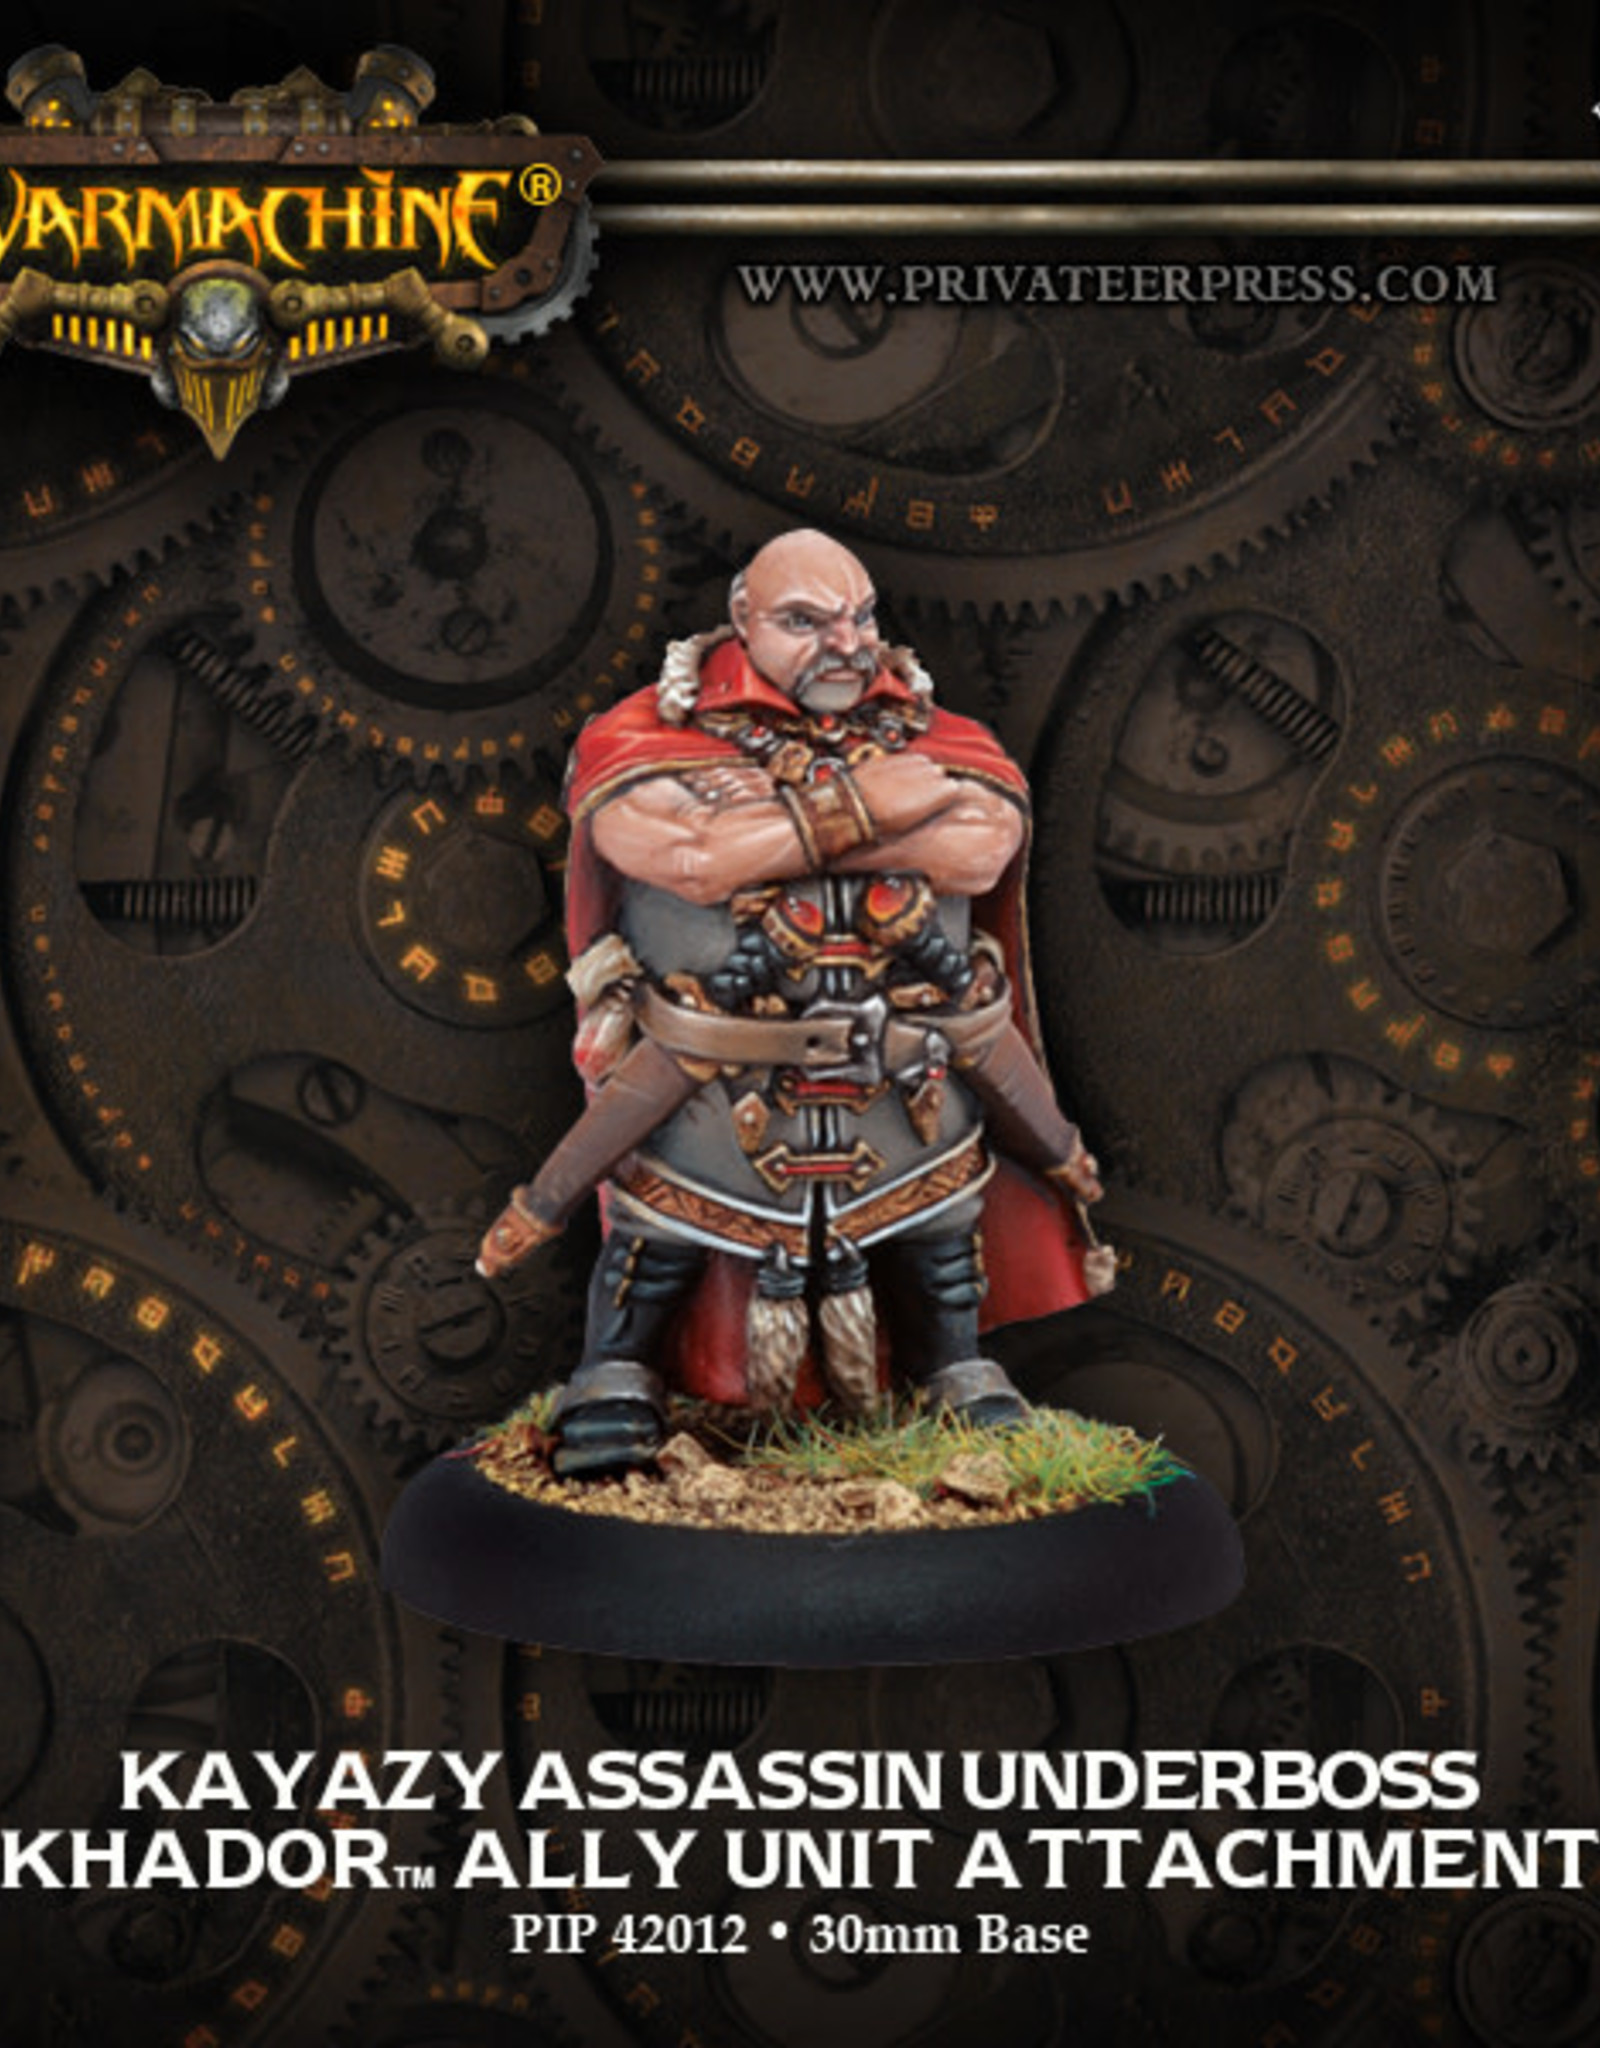 Warmachine Khador - Kayazy Underboss